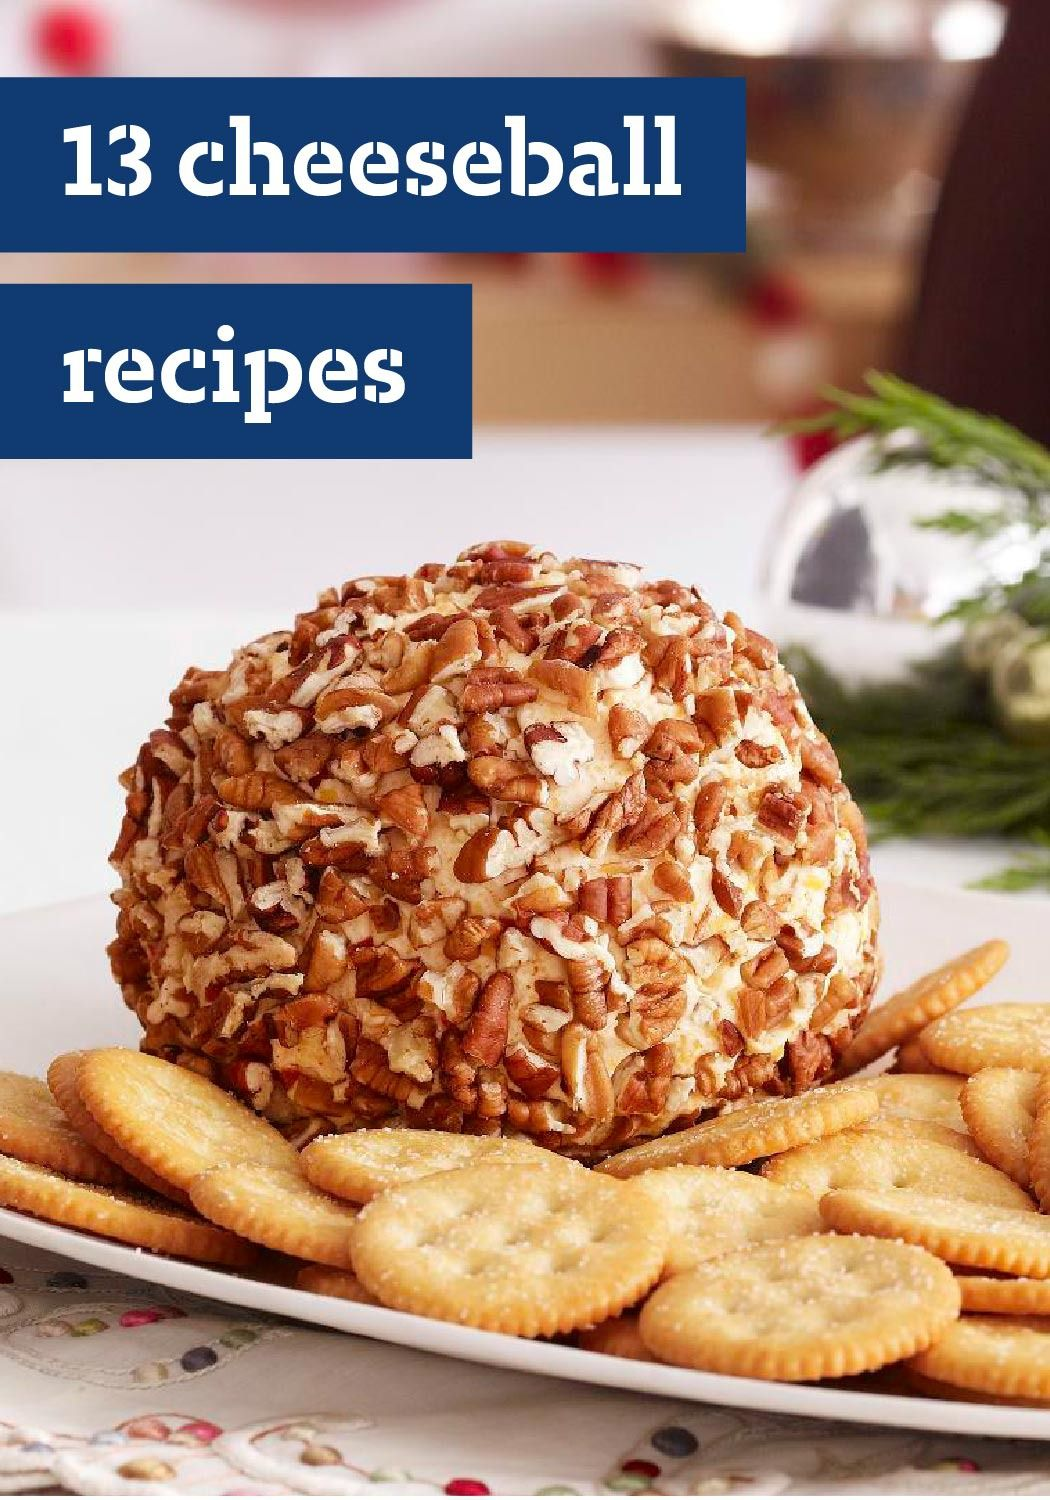 13 Cheeseball Recipes – Cheeseballs are one of the easiest cold appetizers to prepare and are sure to please the holiday crowd.